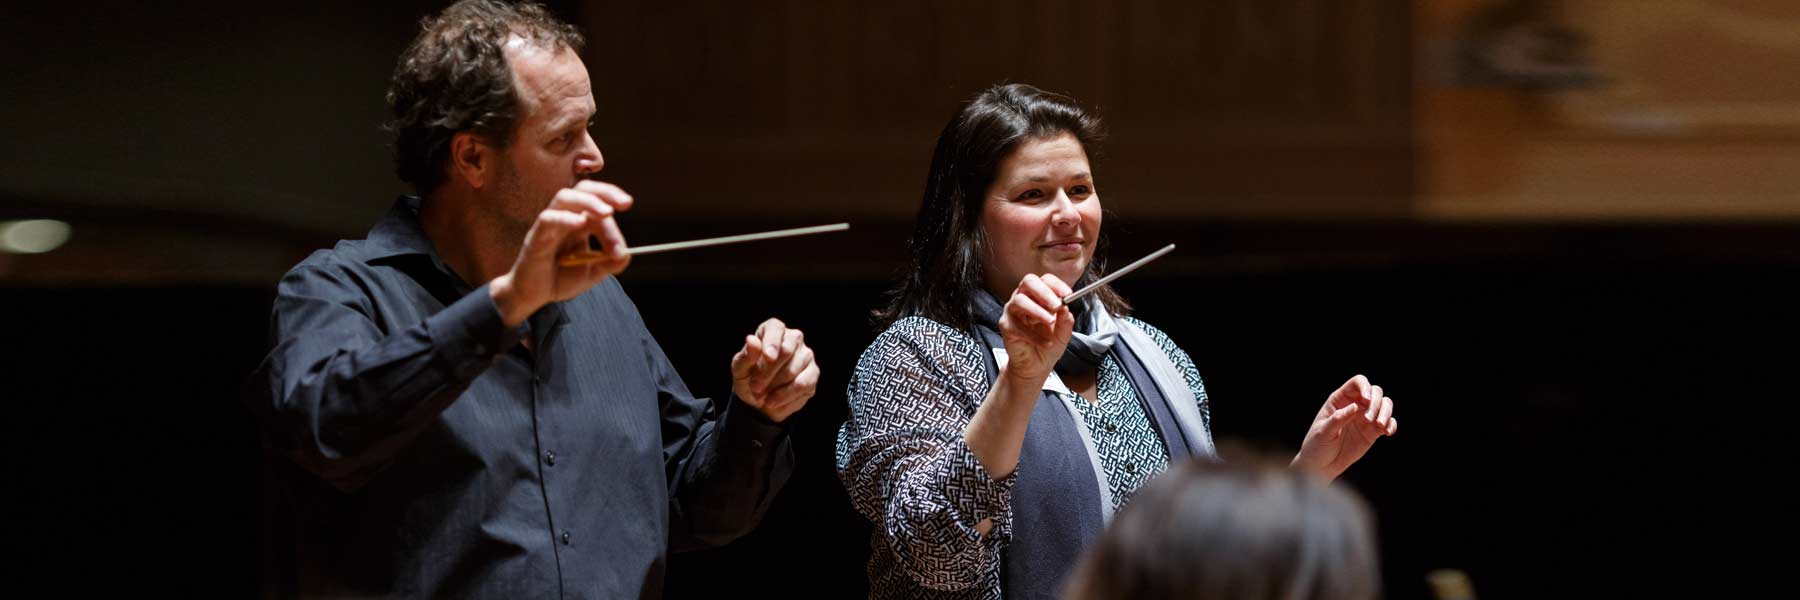 A man and woman practice conducting an orchestra.